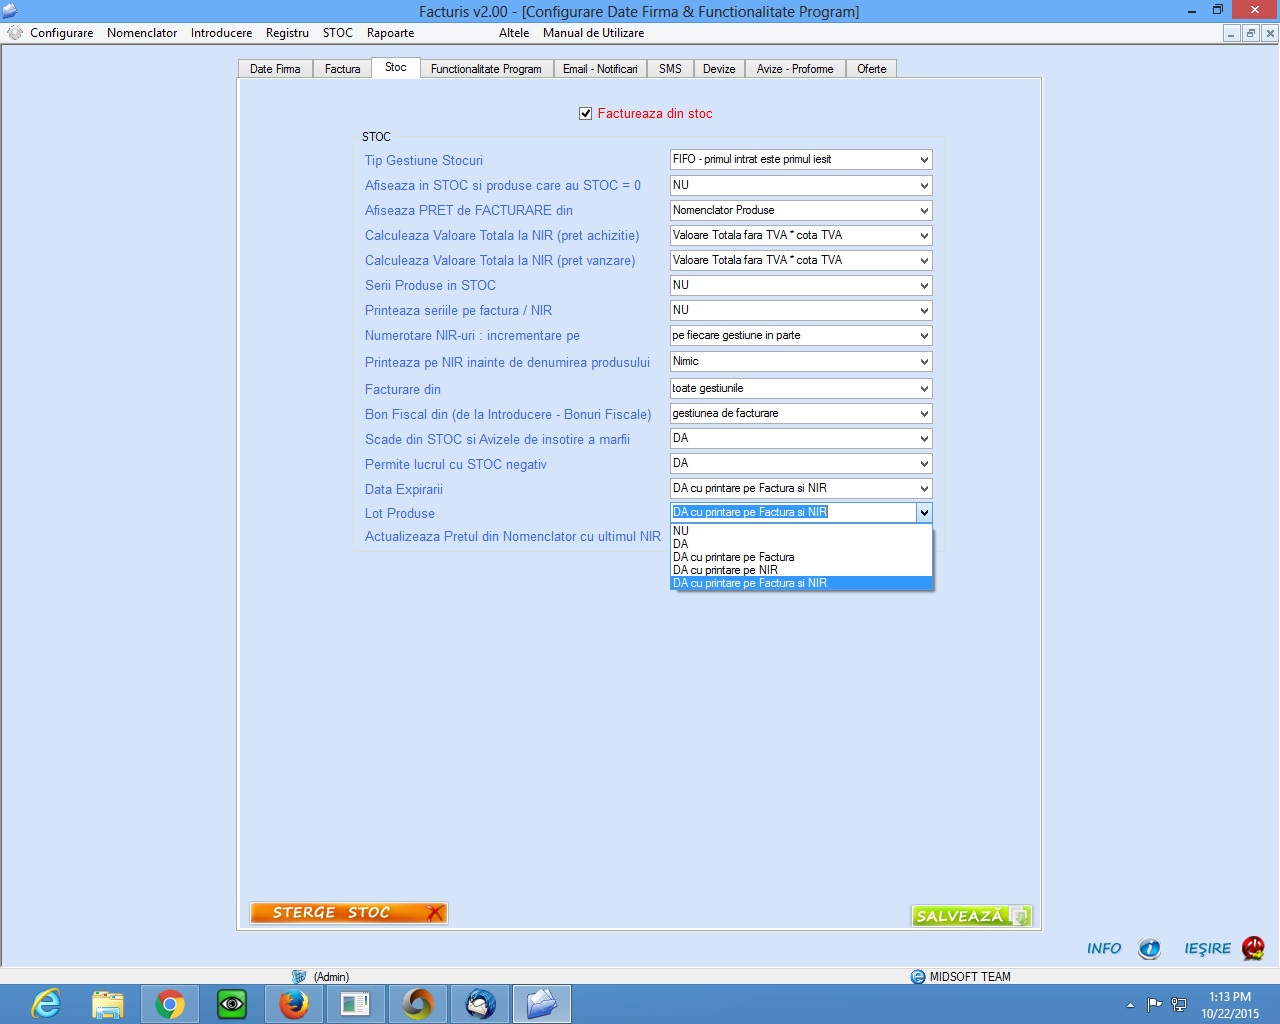 configurare program gestiune stocuri